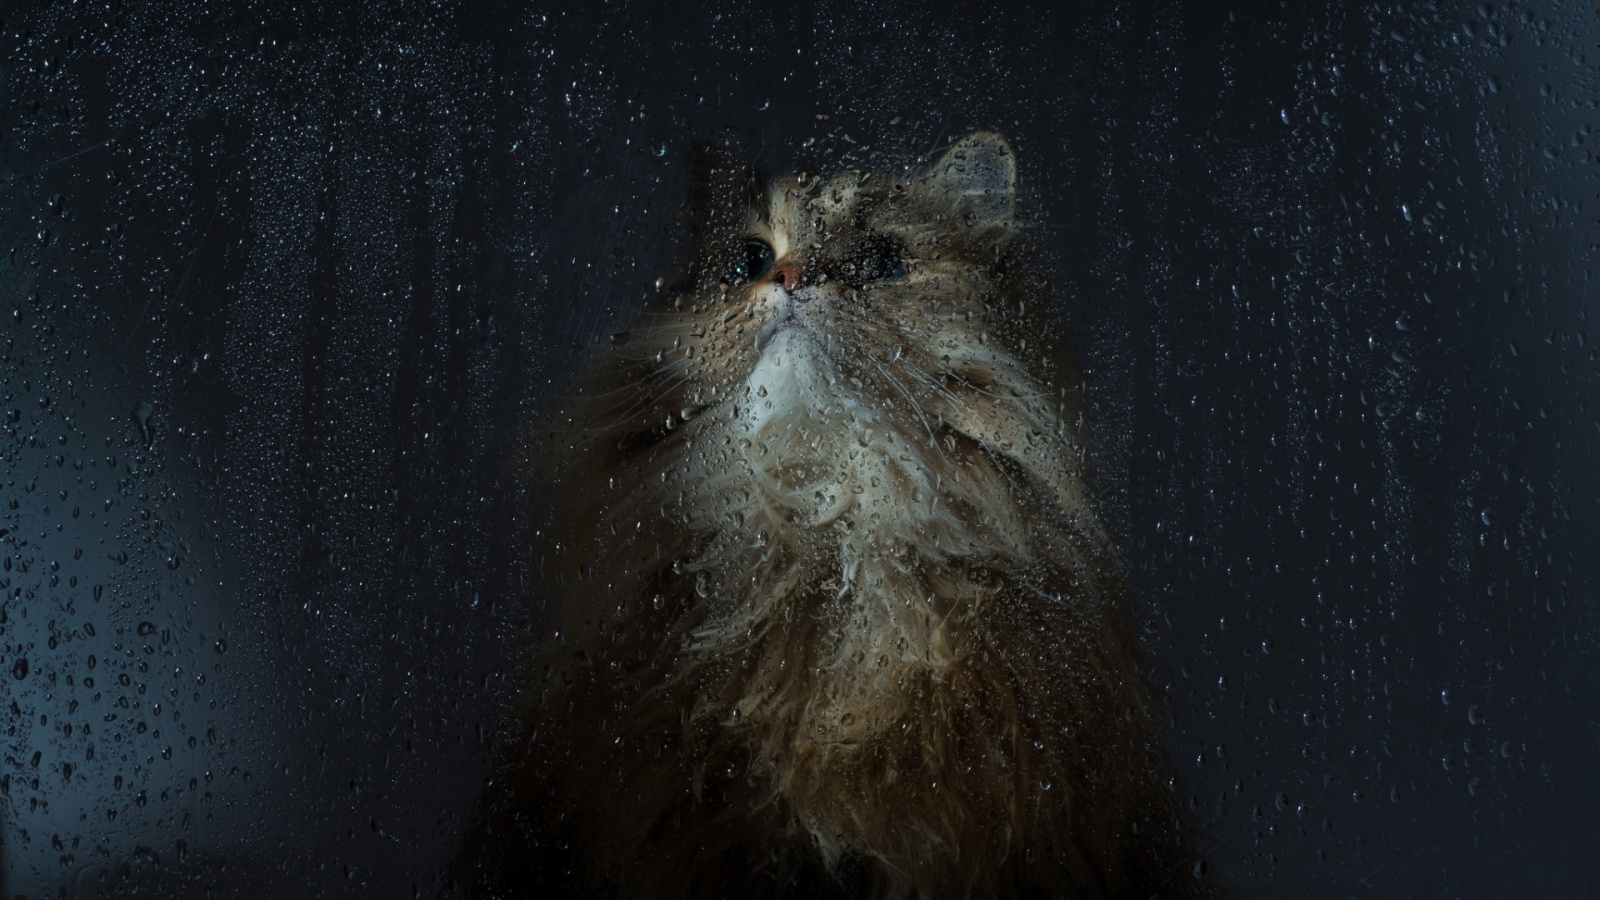 Cat wet window Wallpaper in 1600x900 HD Resolutions